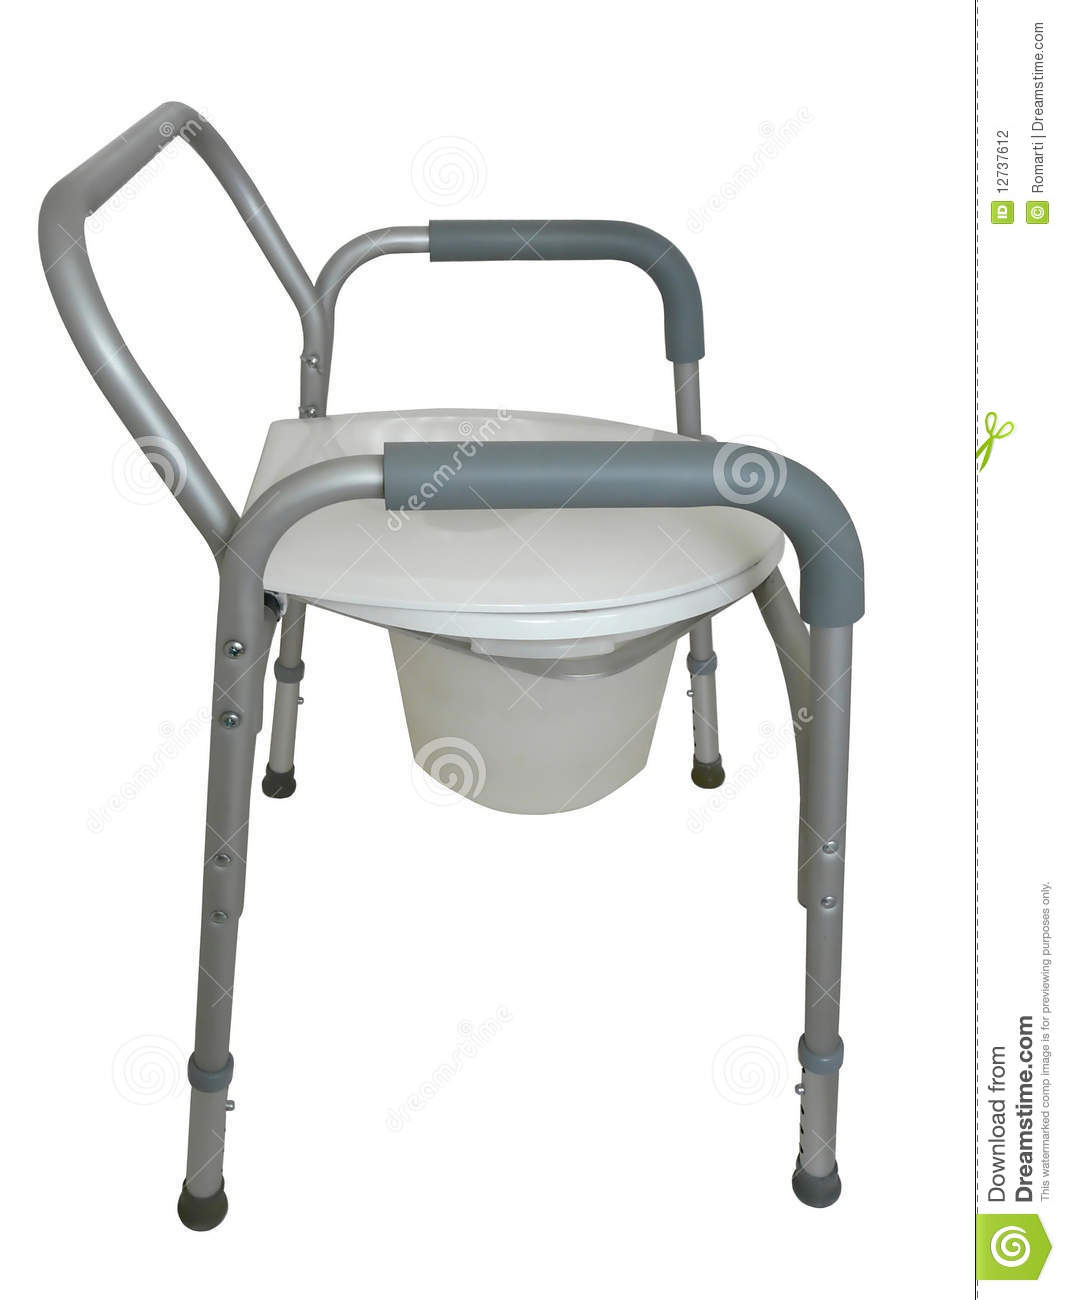 Bedside Commode Chair Bedside Commode Shower Chair Stock Photo Image 12737612